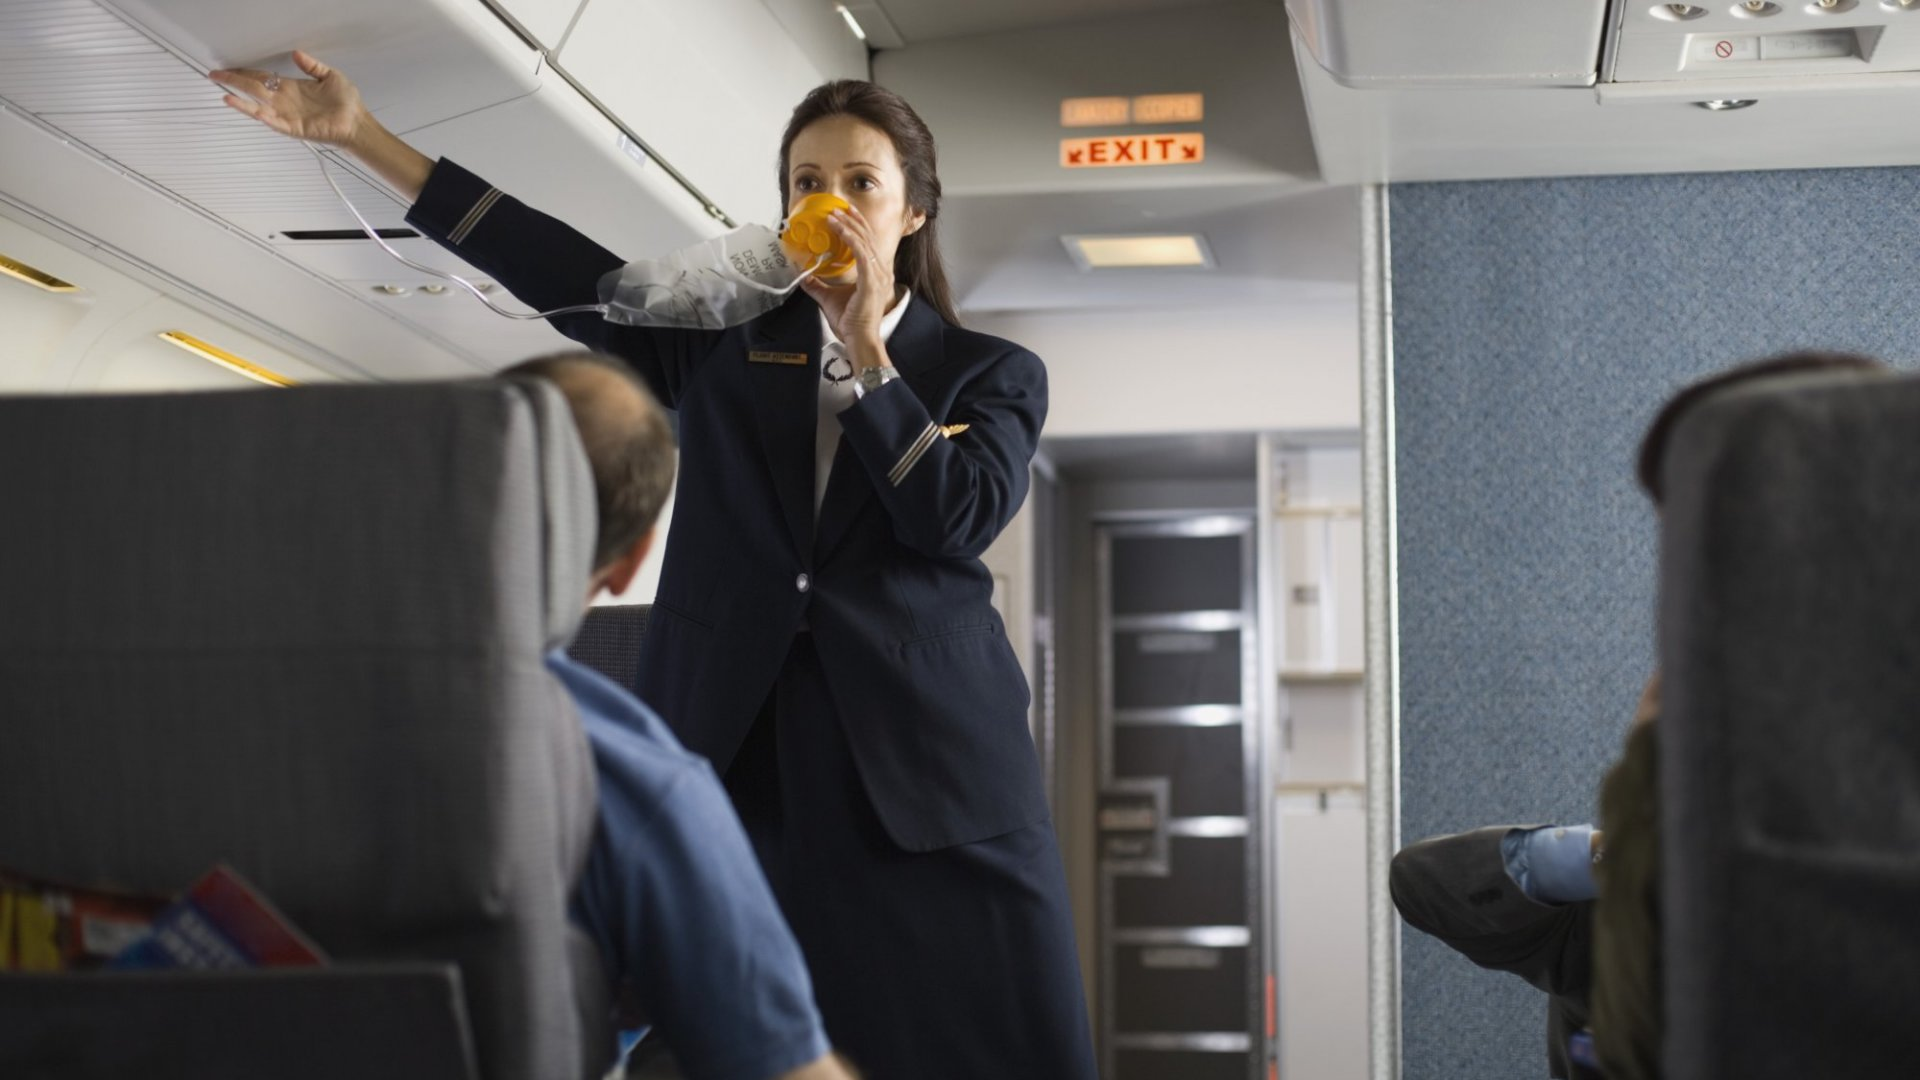 Attitude is everything, especially at 35,000 feet.